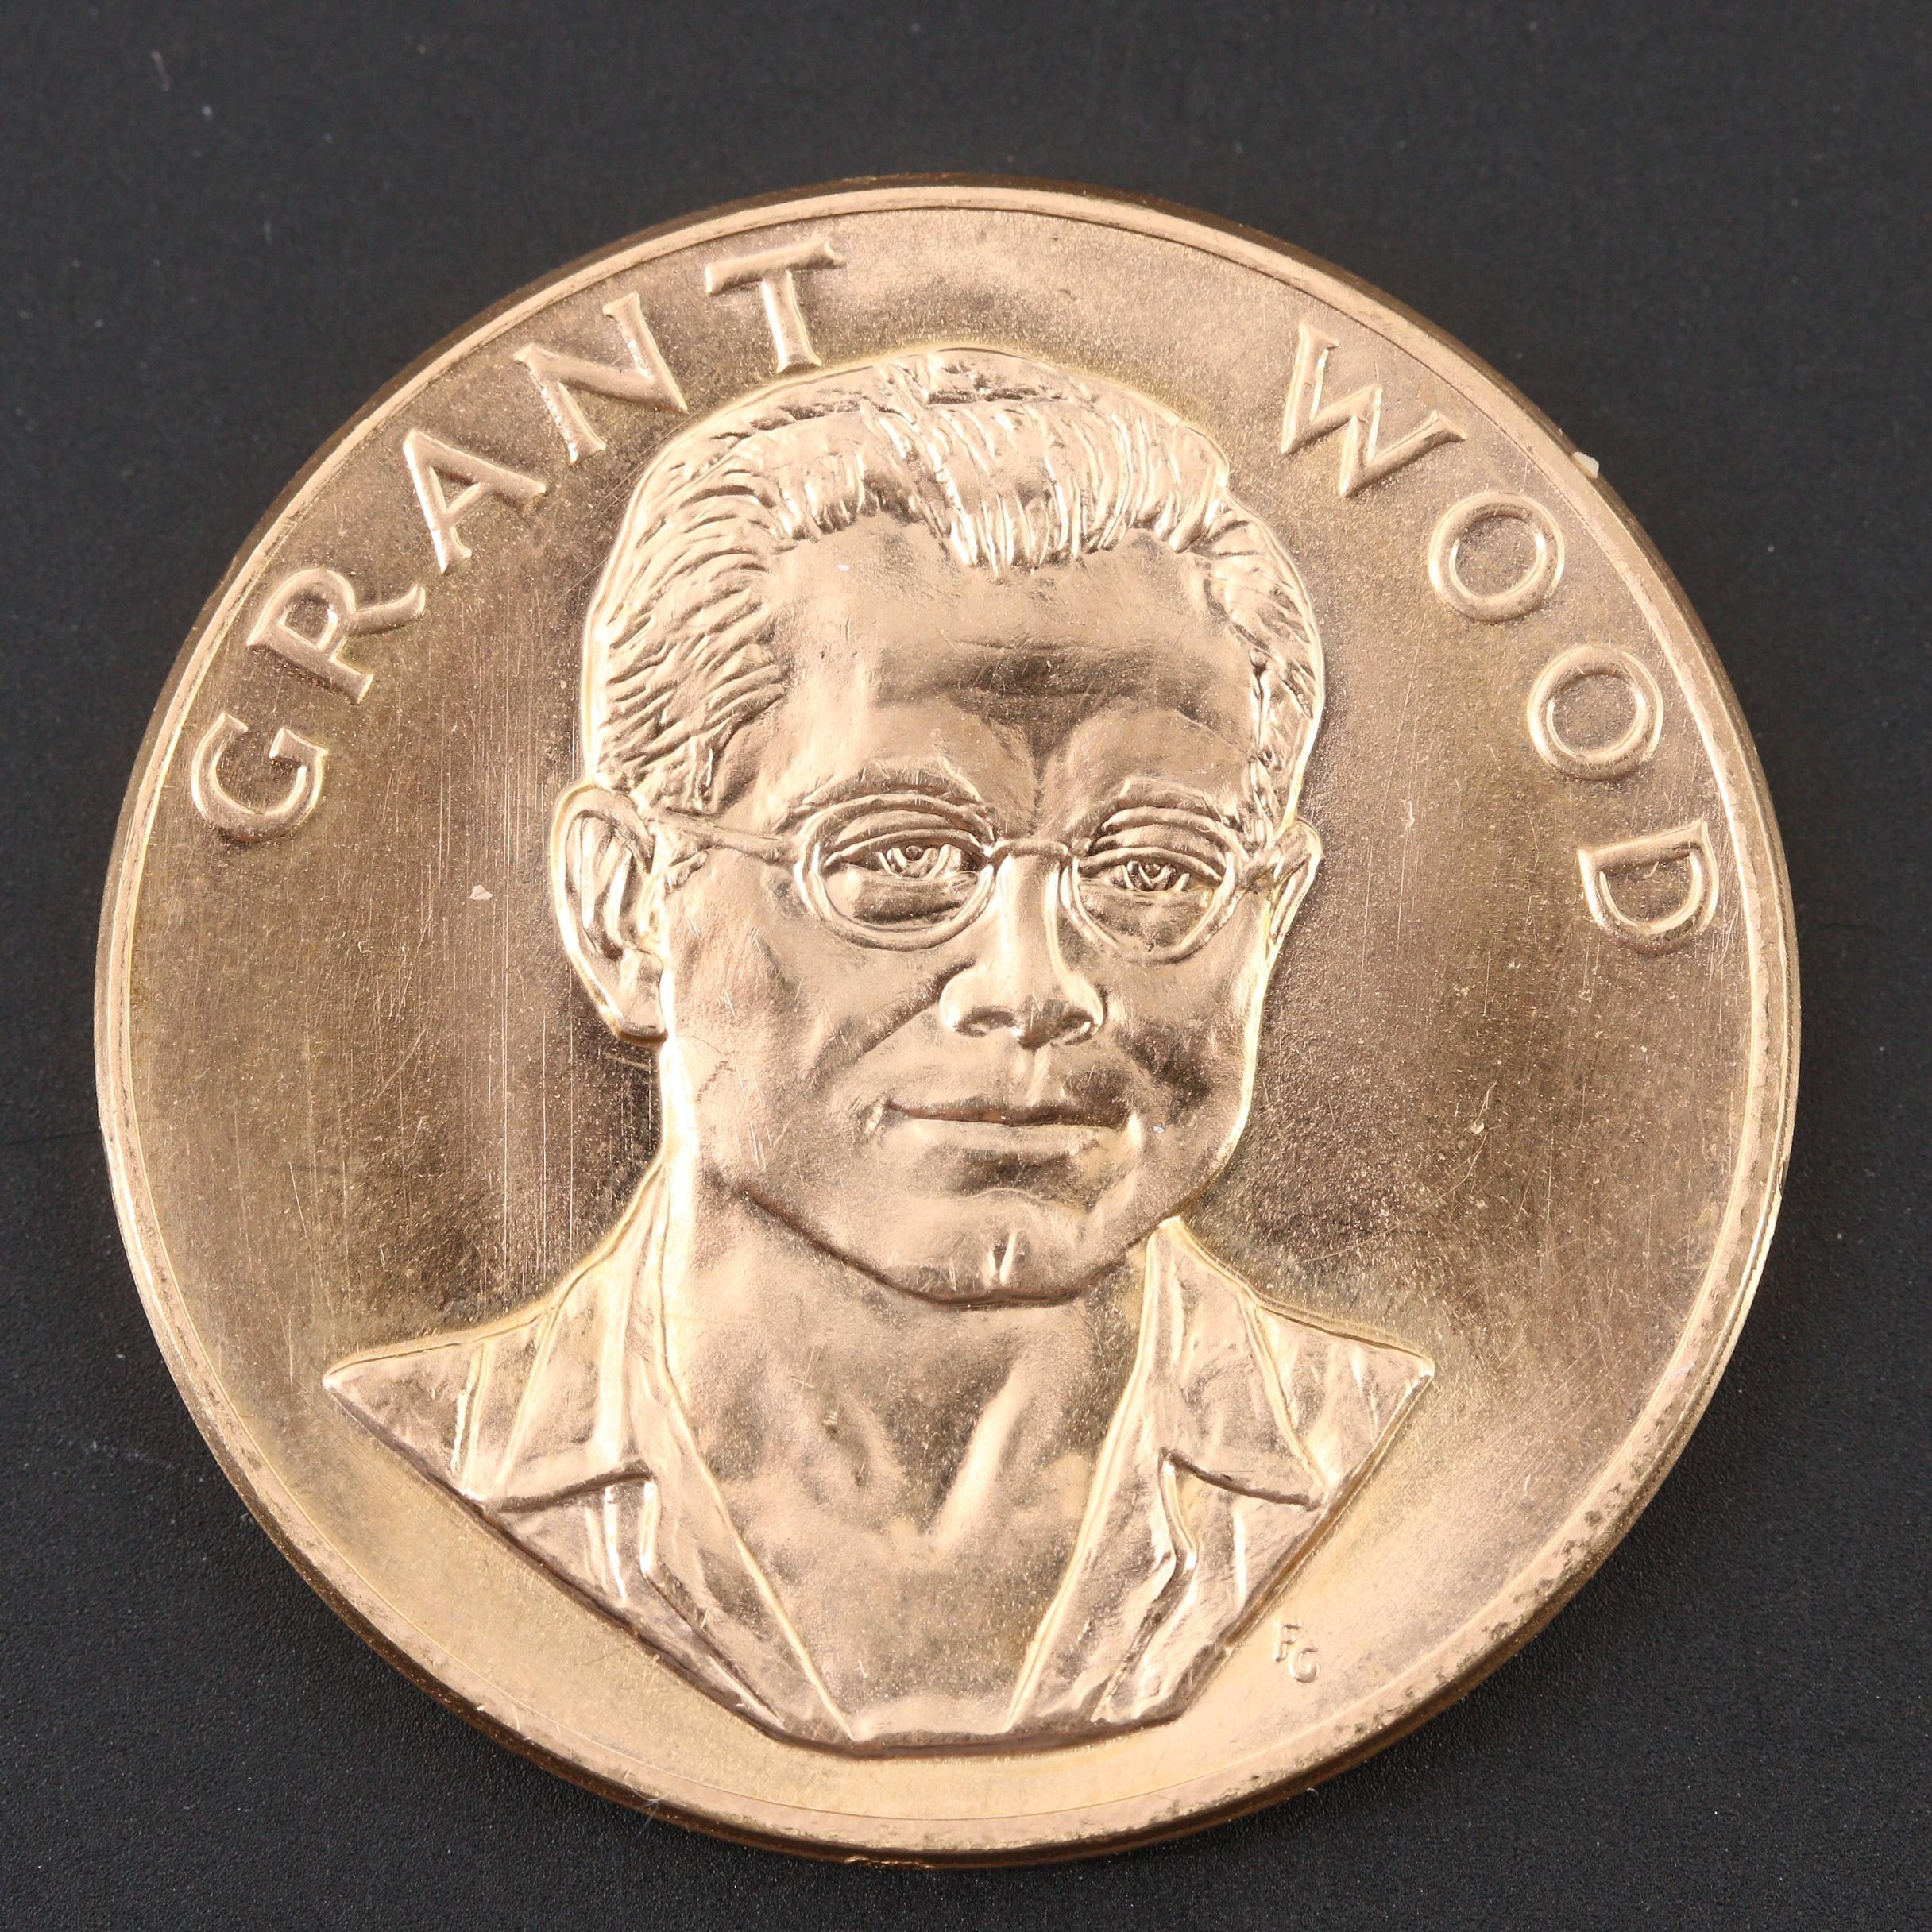 1980 American Commemorative Arts Gold Medal Celebrating Grant Woods